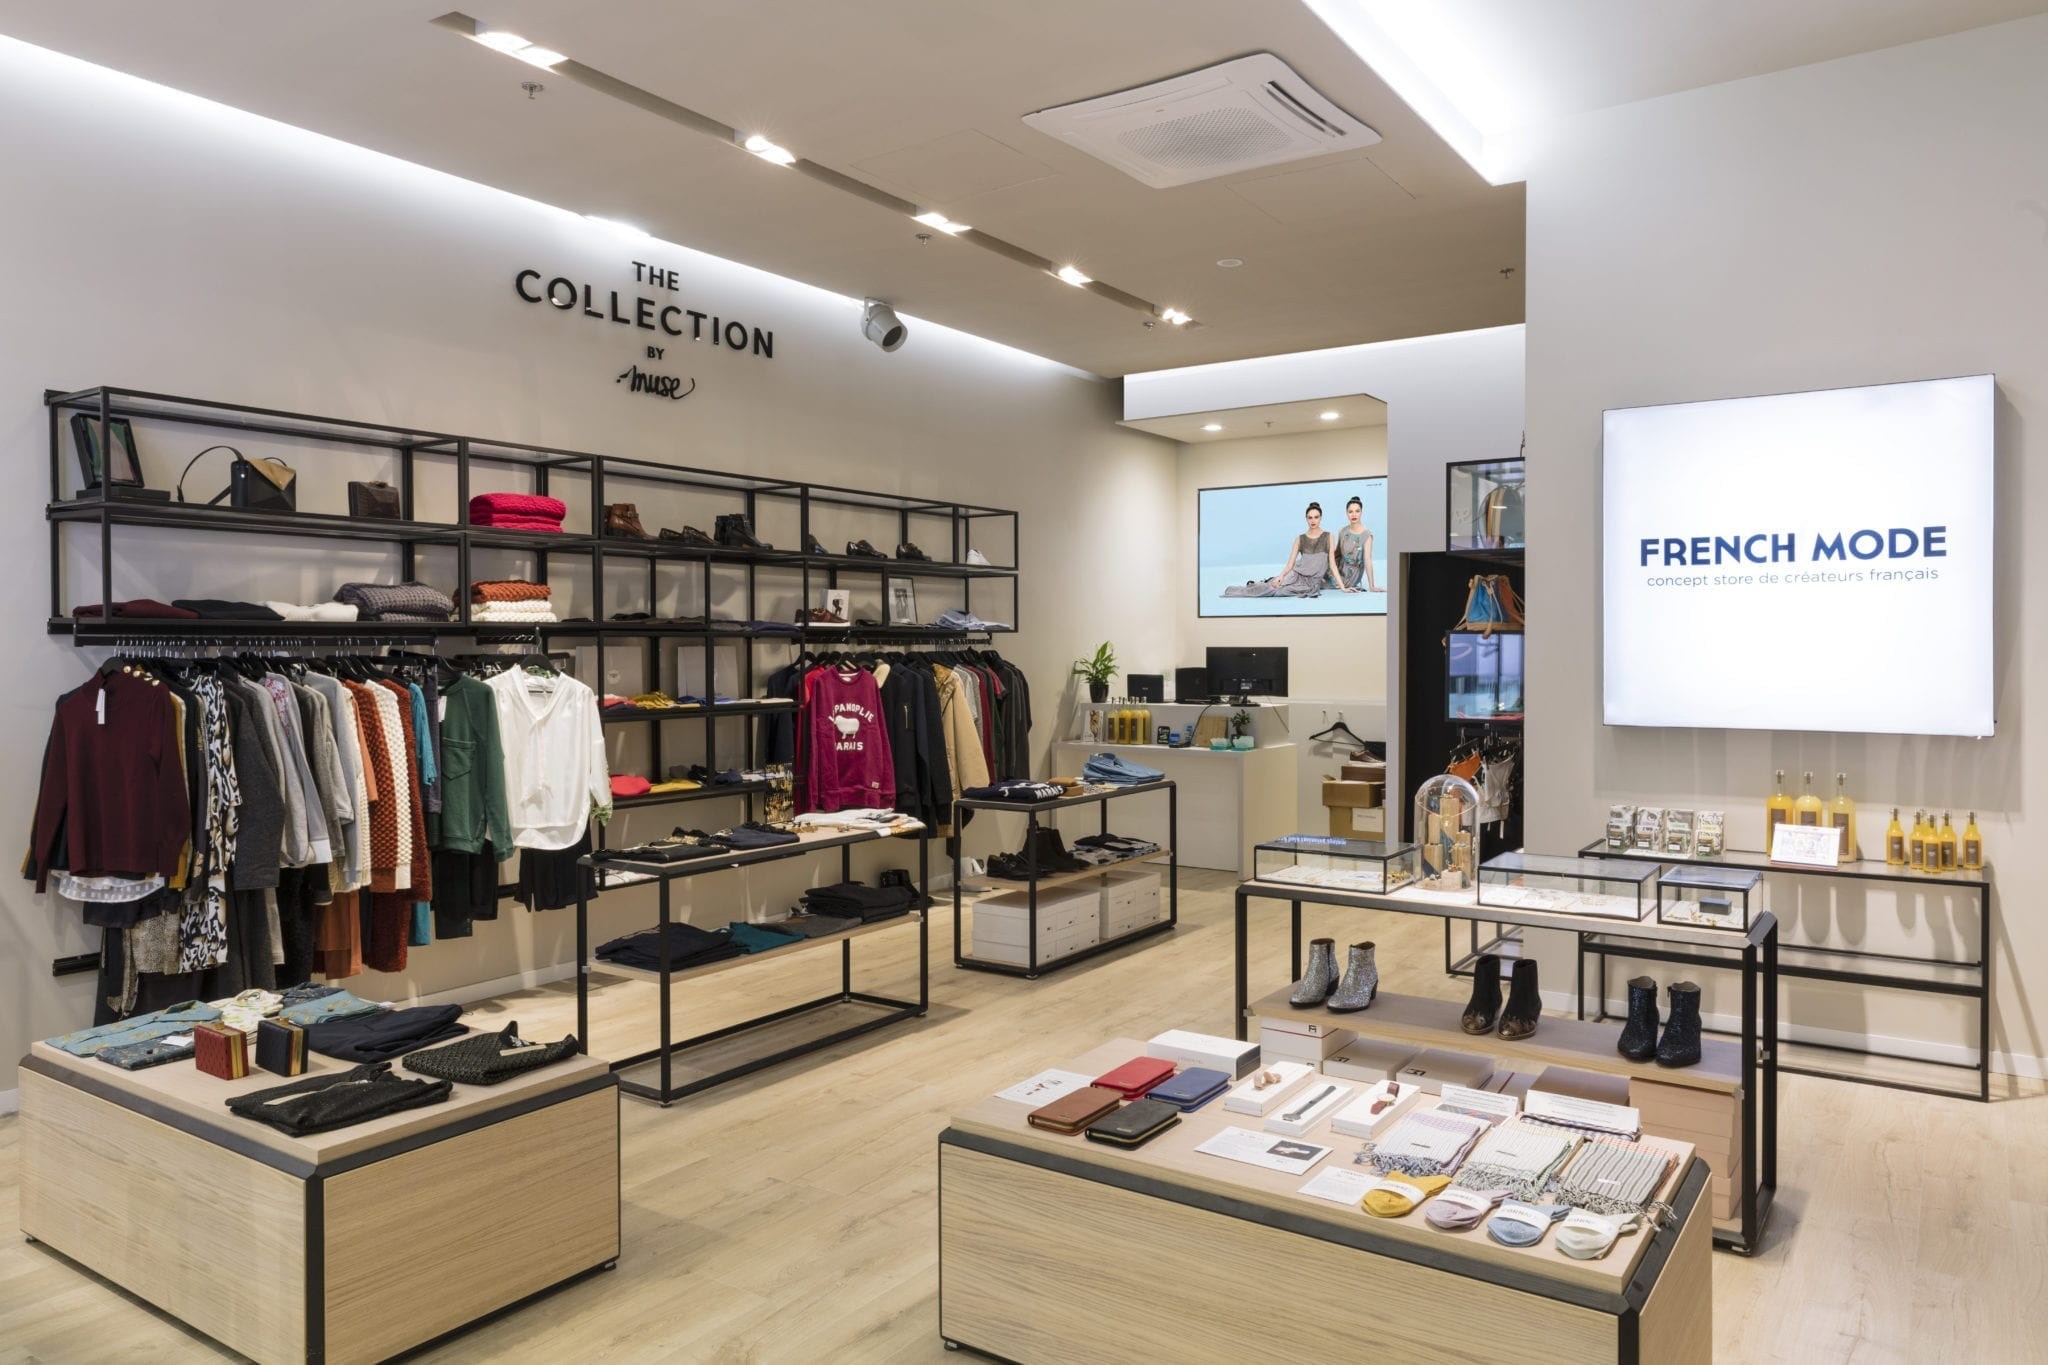 ... the Collection b... y Muse s main purpose is to incubate new retailers  and brands, test the popularity of new categories, respond to seasonal  demand, ... a9135bbcfcd